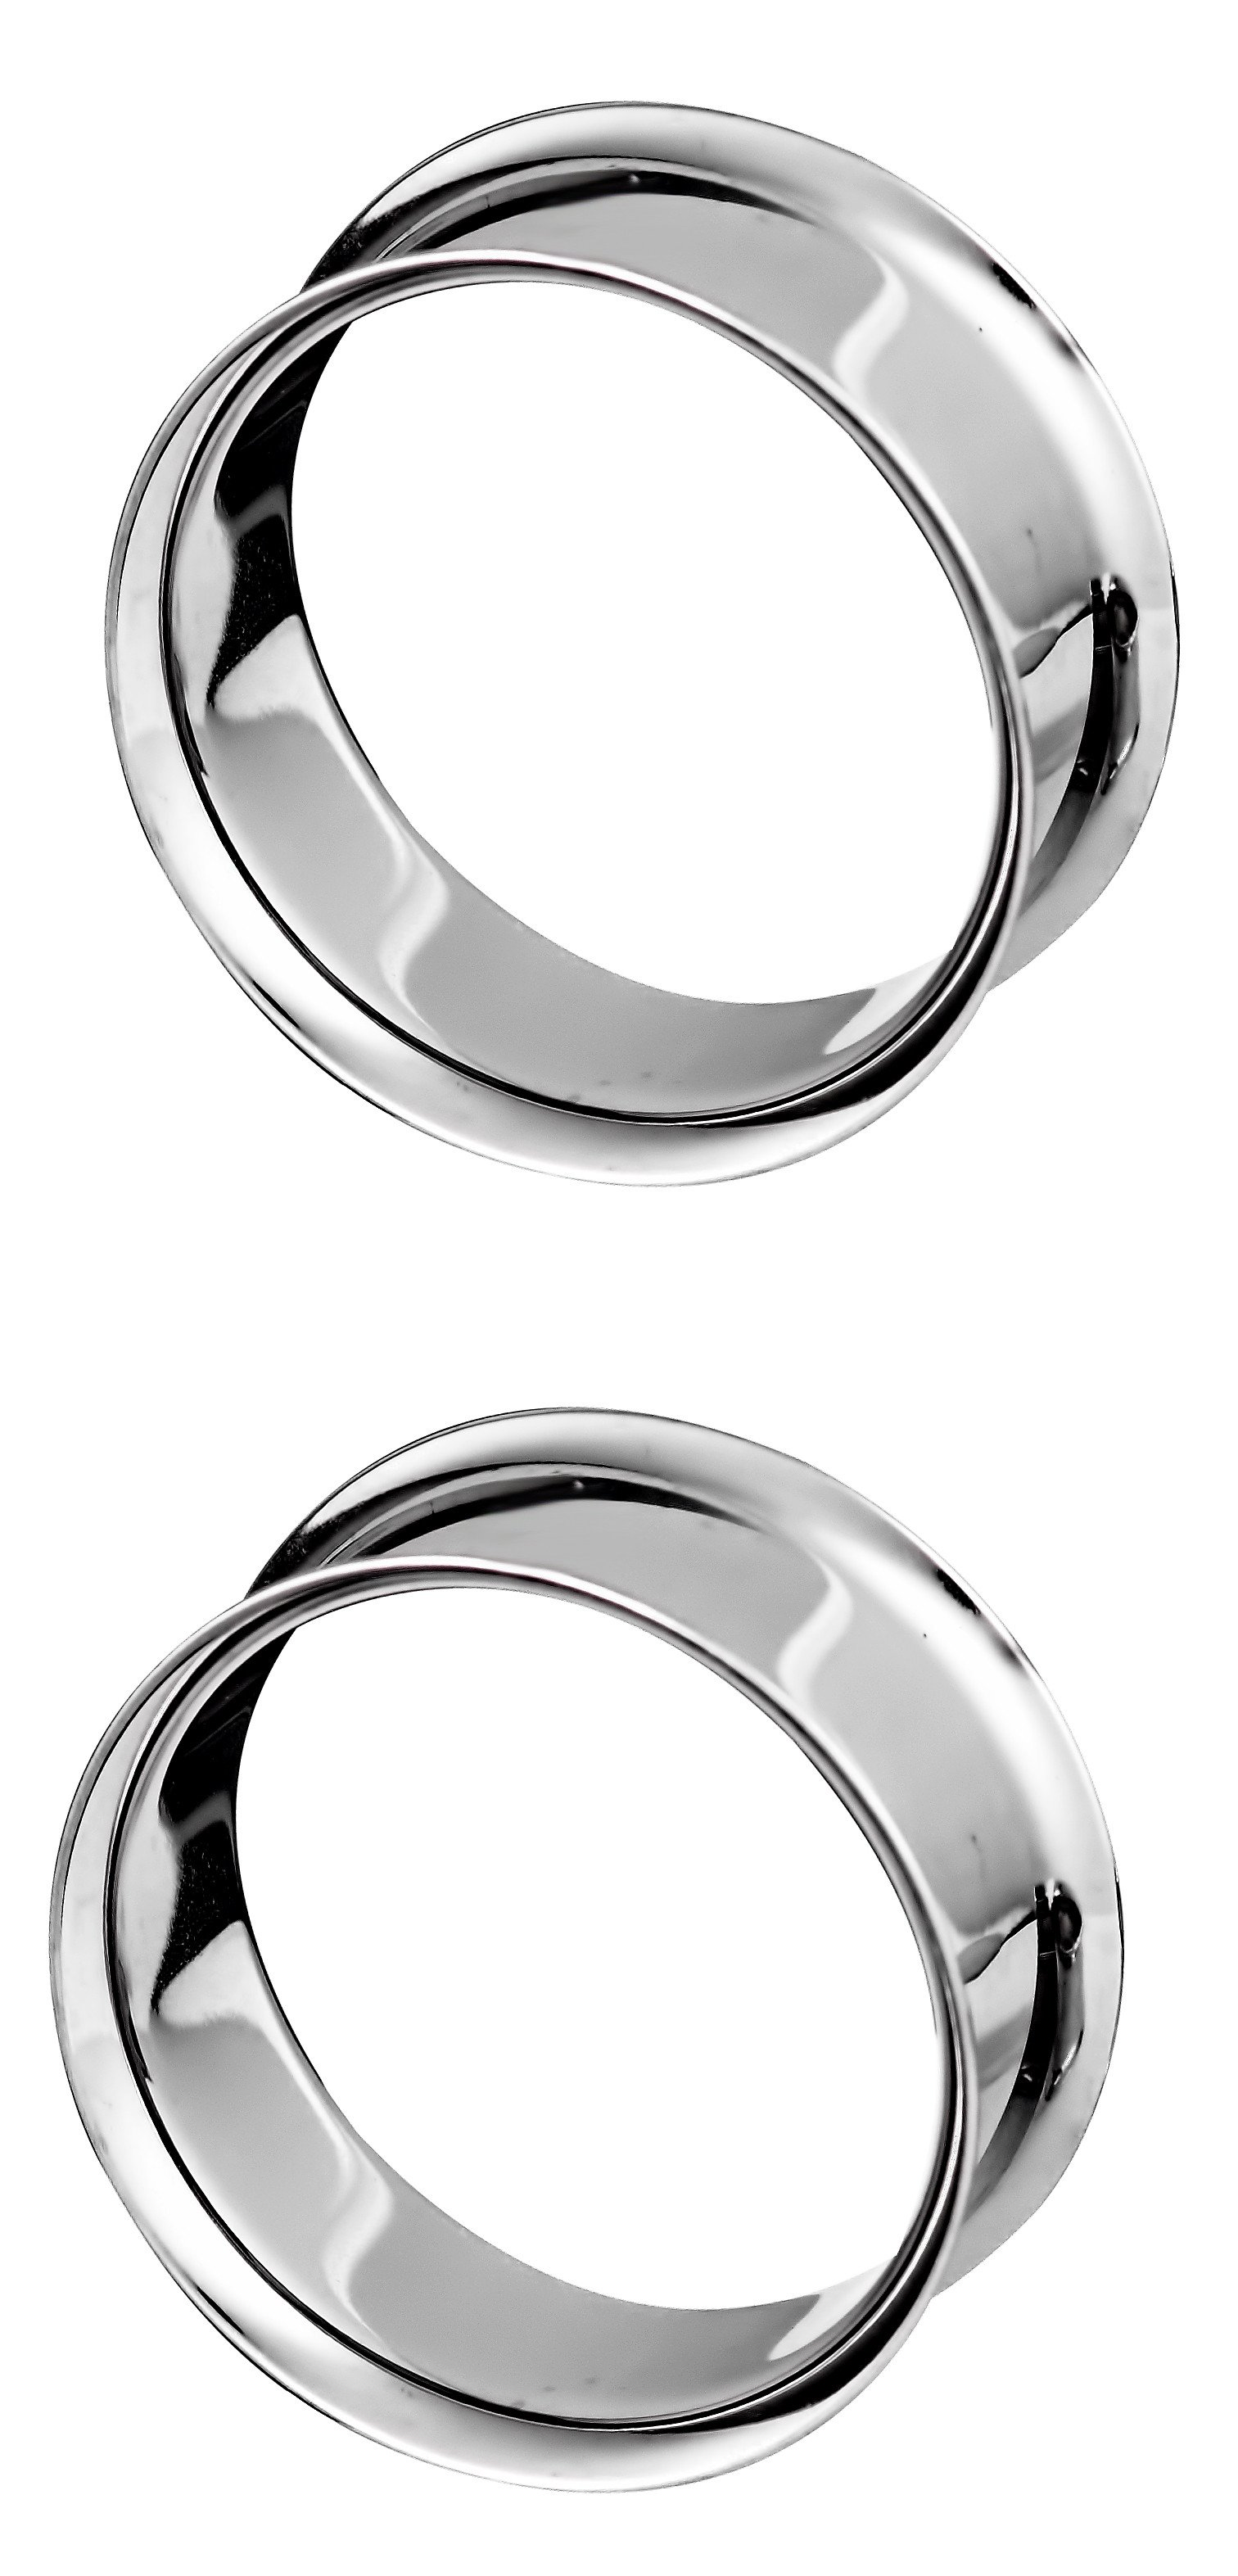 8mm Surgical Steel Curved Eyebrow Bar Ring with Ball /& Spike Ends 1 x 16g